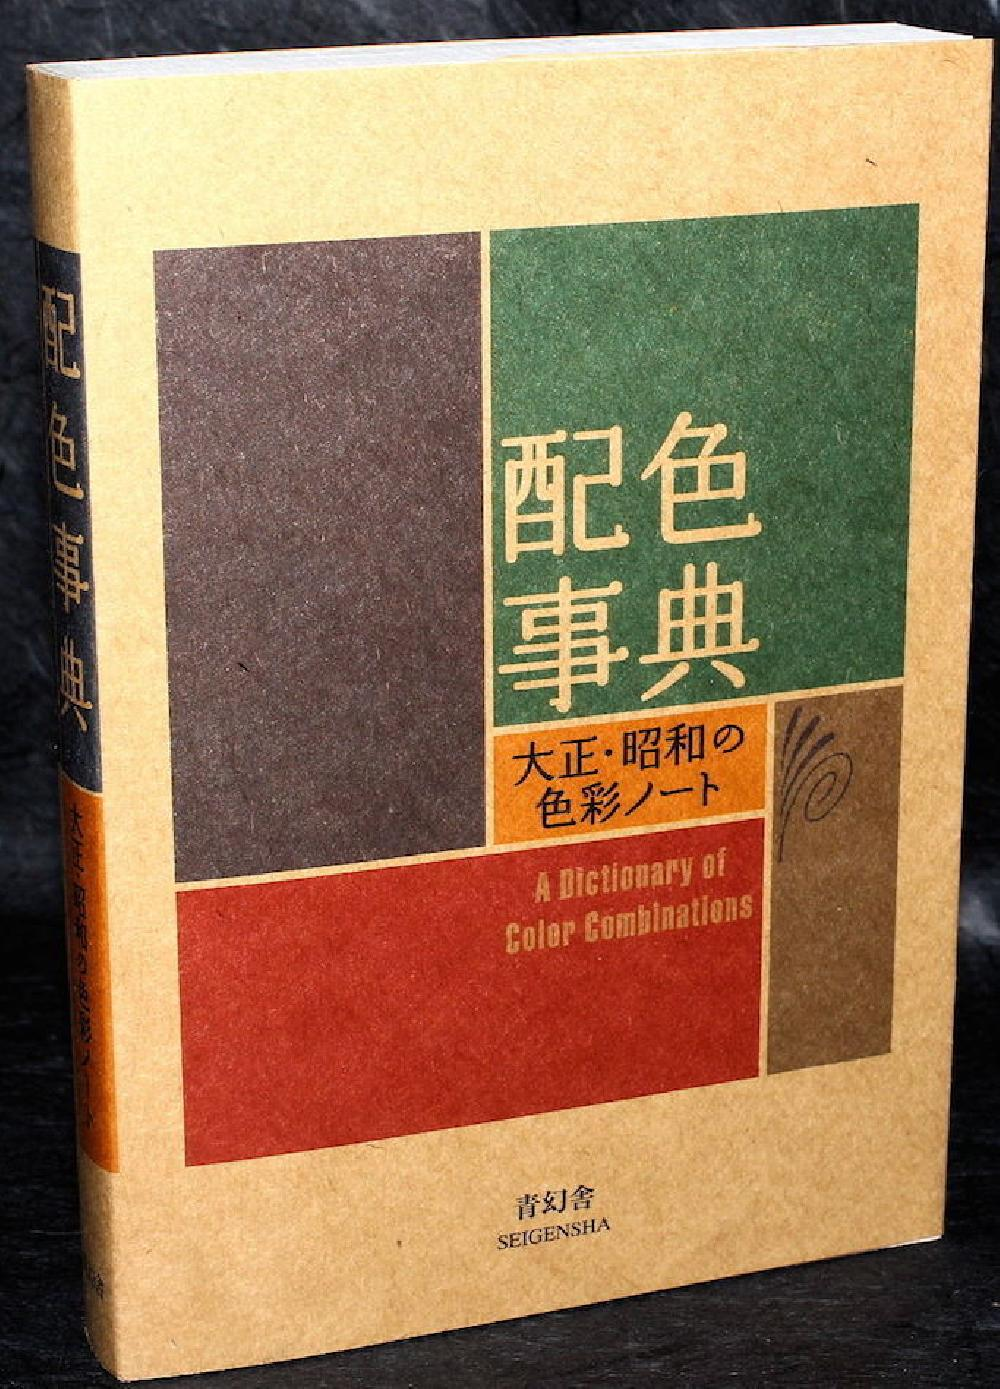 A Dictionary of color combinations Volume 1